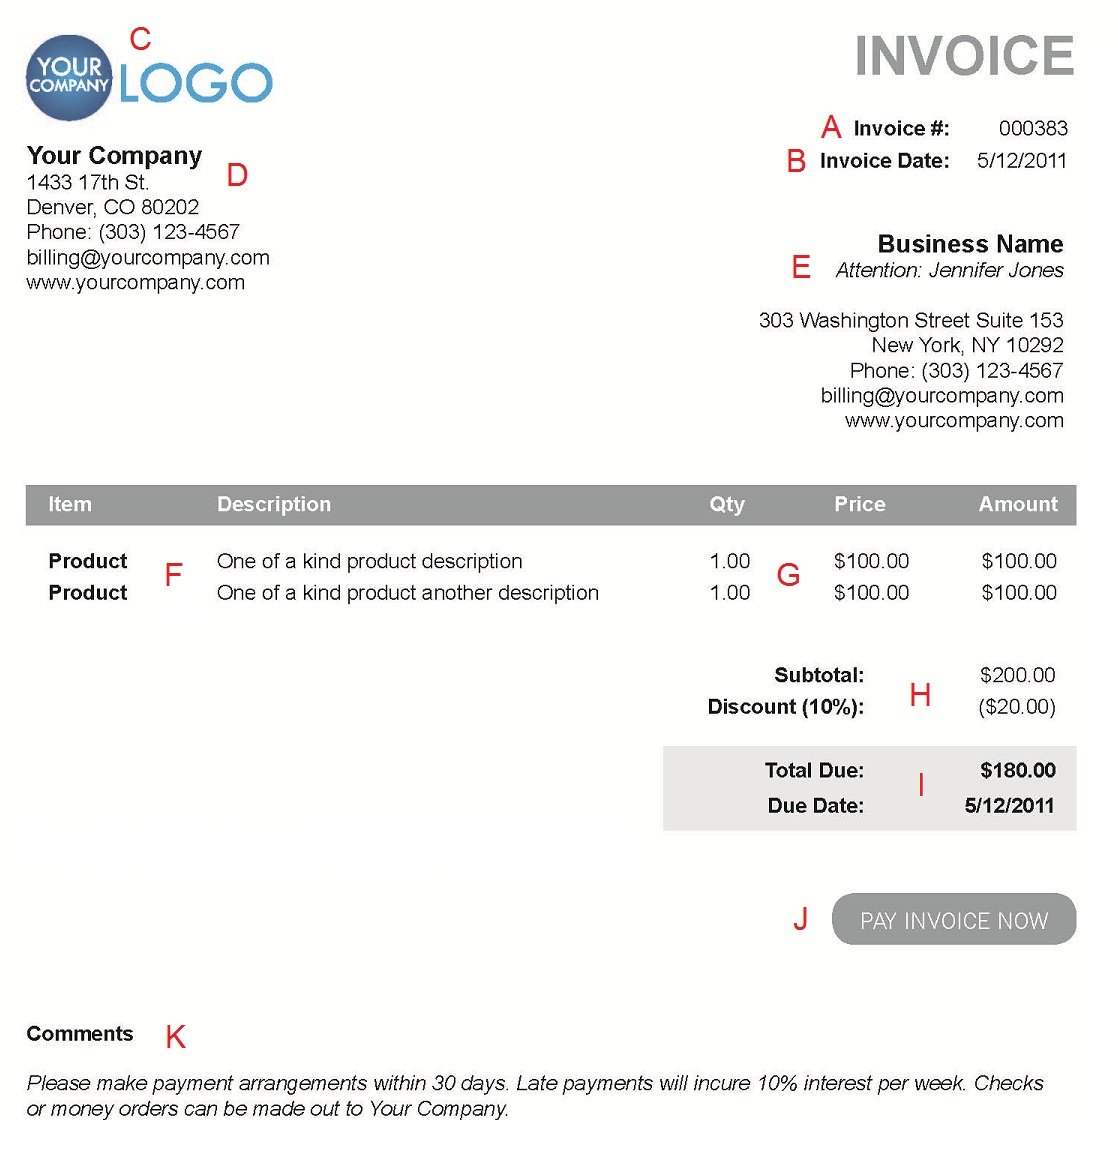 Usdgus  Pleasing The  Different Sections Of An Electronic Payment Invoice With Fetching A  With Enchanting Invoice Template Freelance Also Graphic Design Invoices In Addition On The Invoice And Fill In Invoice As Well As Invoices On Line Additionally What Is The Invoice Price Of A New Car From Paysimplecom With Usdgus  Fetching The  Different Sections Of An Electronic Payment Invoice With Enchanting A  And Pleasing Invoice Template Freelance Also Graphic Design Invoices In Addition On The Invoice From Paysimplecom